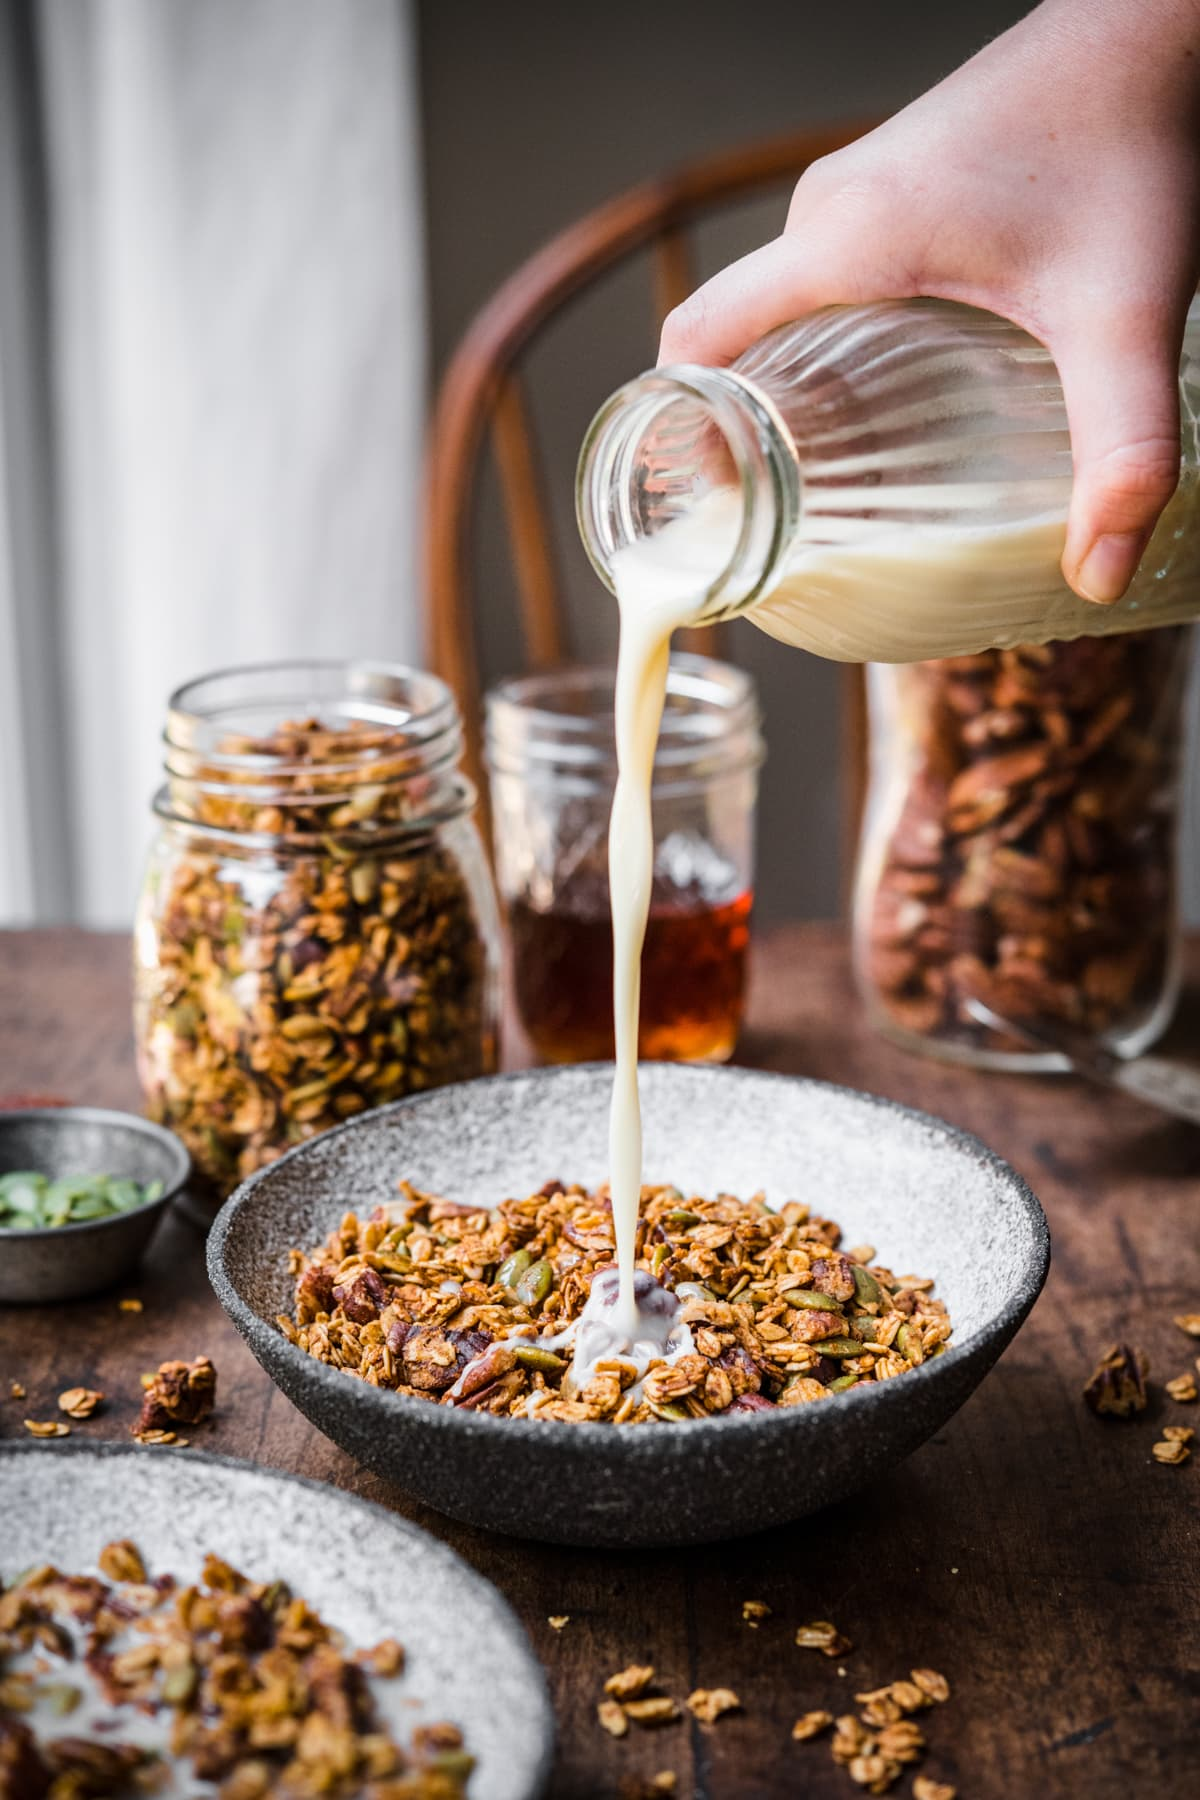 Pouring milk into a bowl of pumpkin spice granola on wood table.